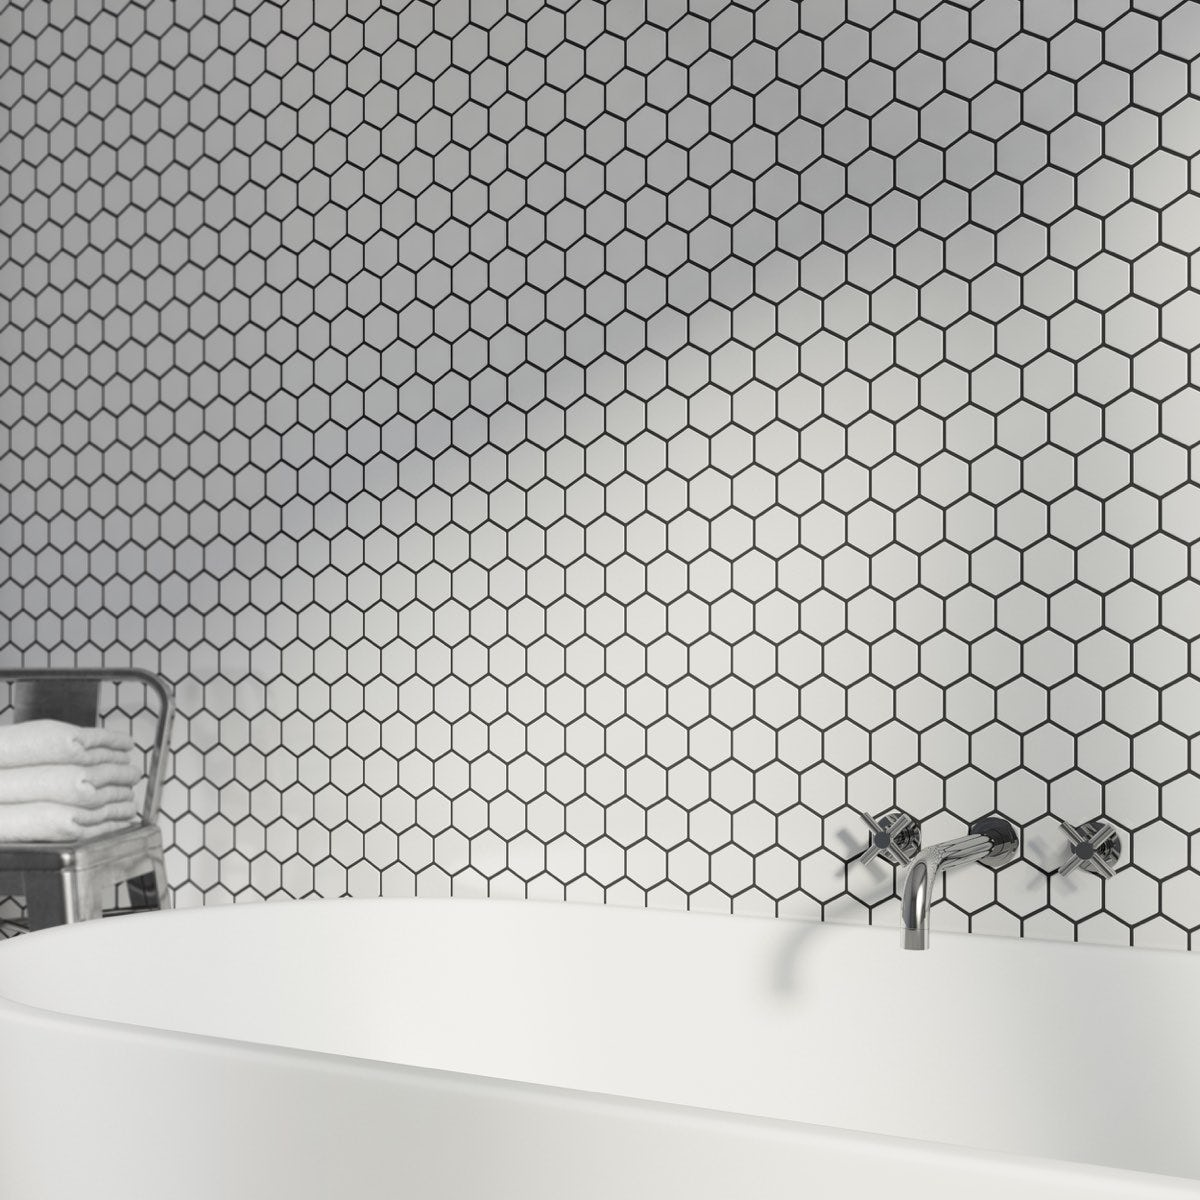 British Ceramic Tile Mosaic Hex White Gloss Tile 300mm X 300mm   1 Sheet